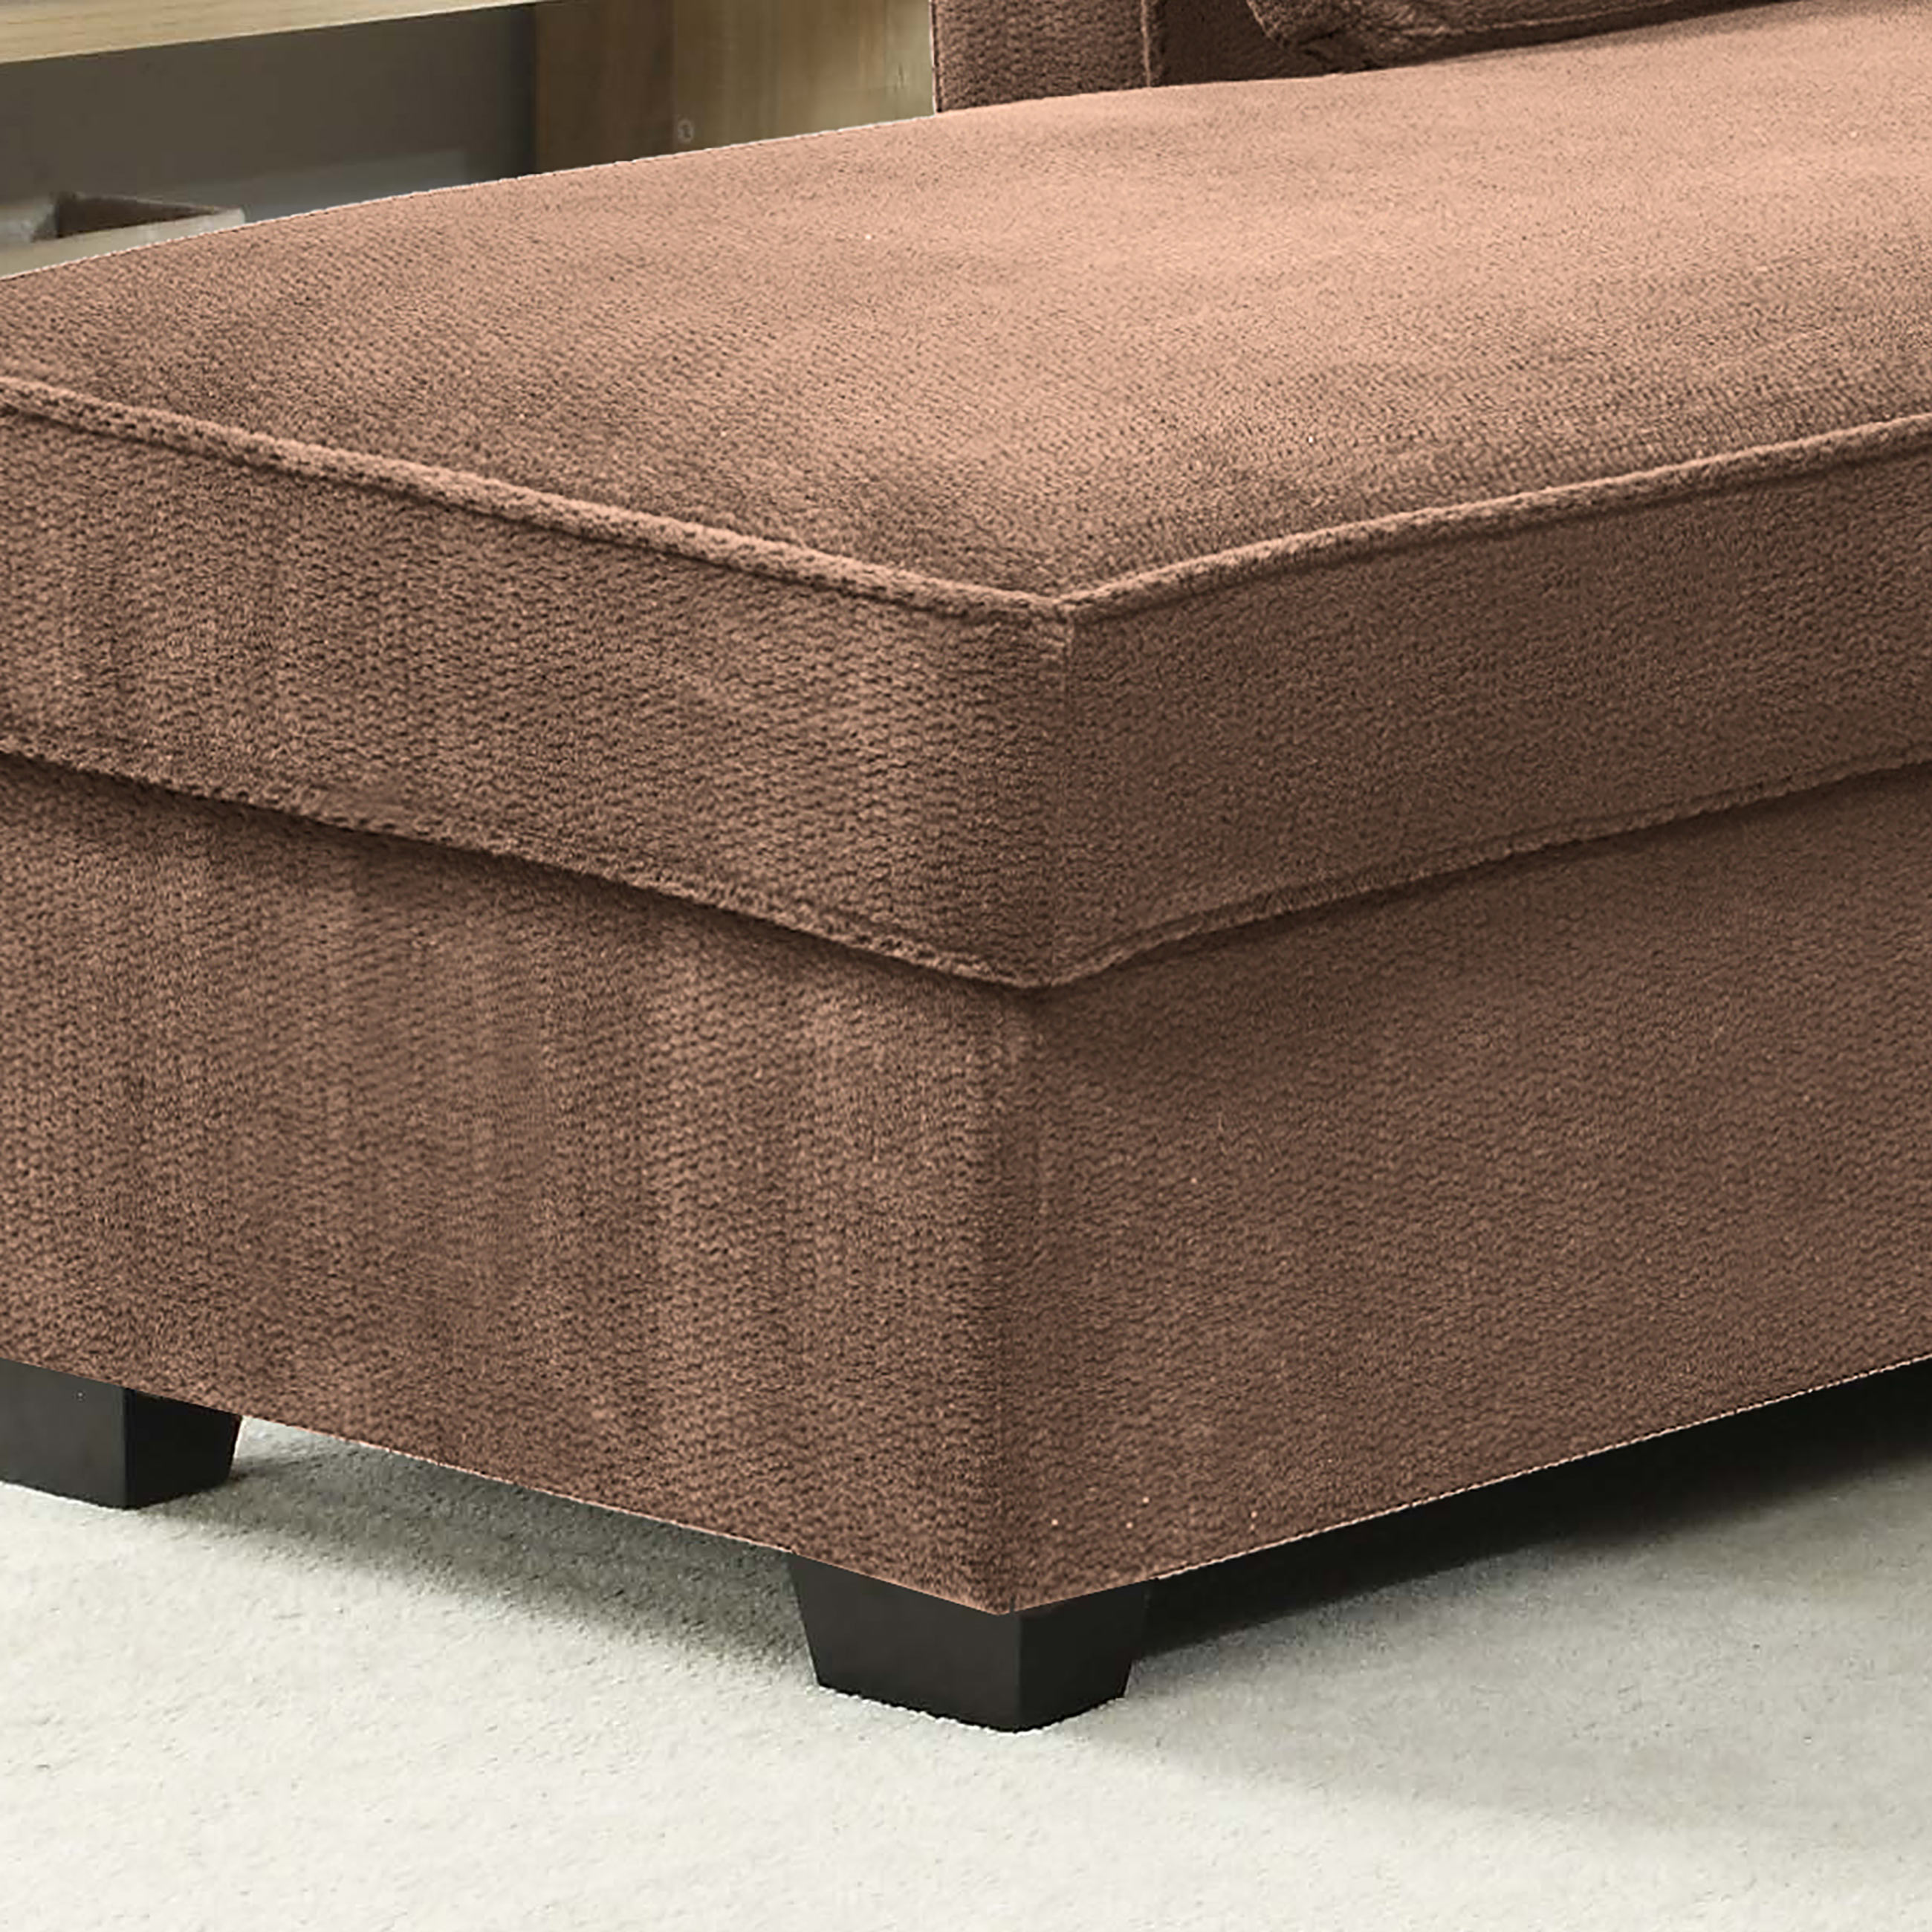 Chaela Sectional Convertible Sofa Light Brown by Serta Lifestyle